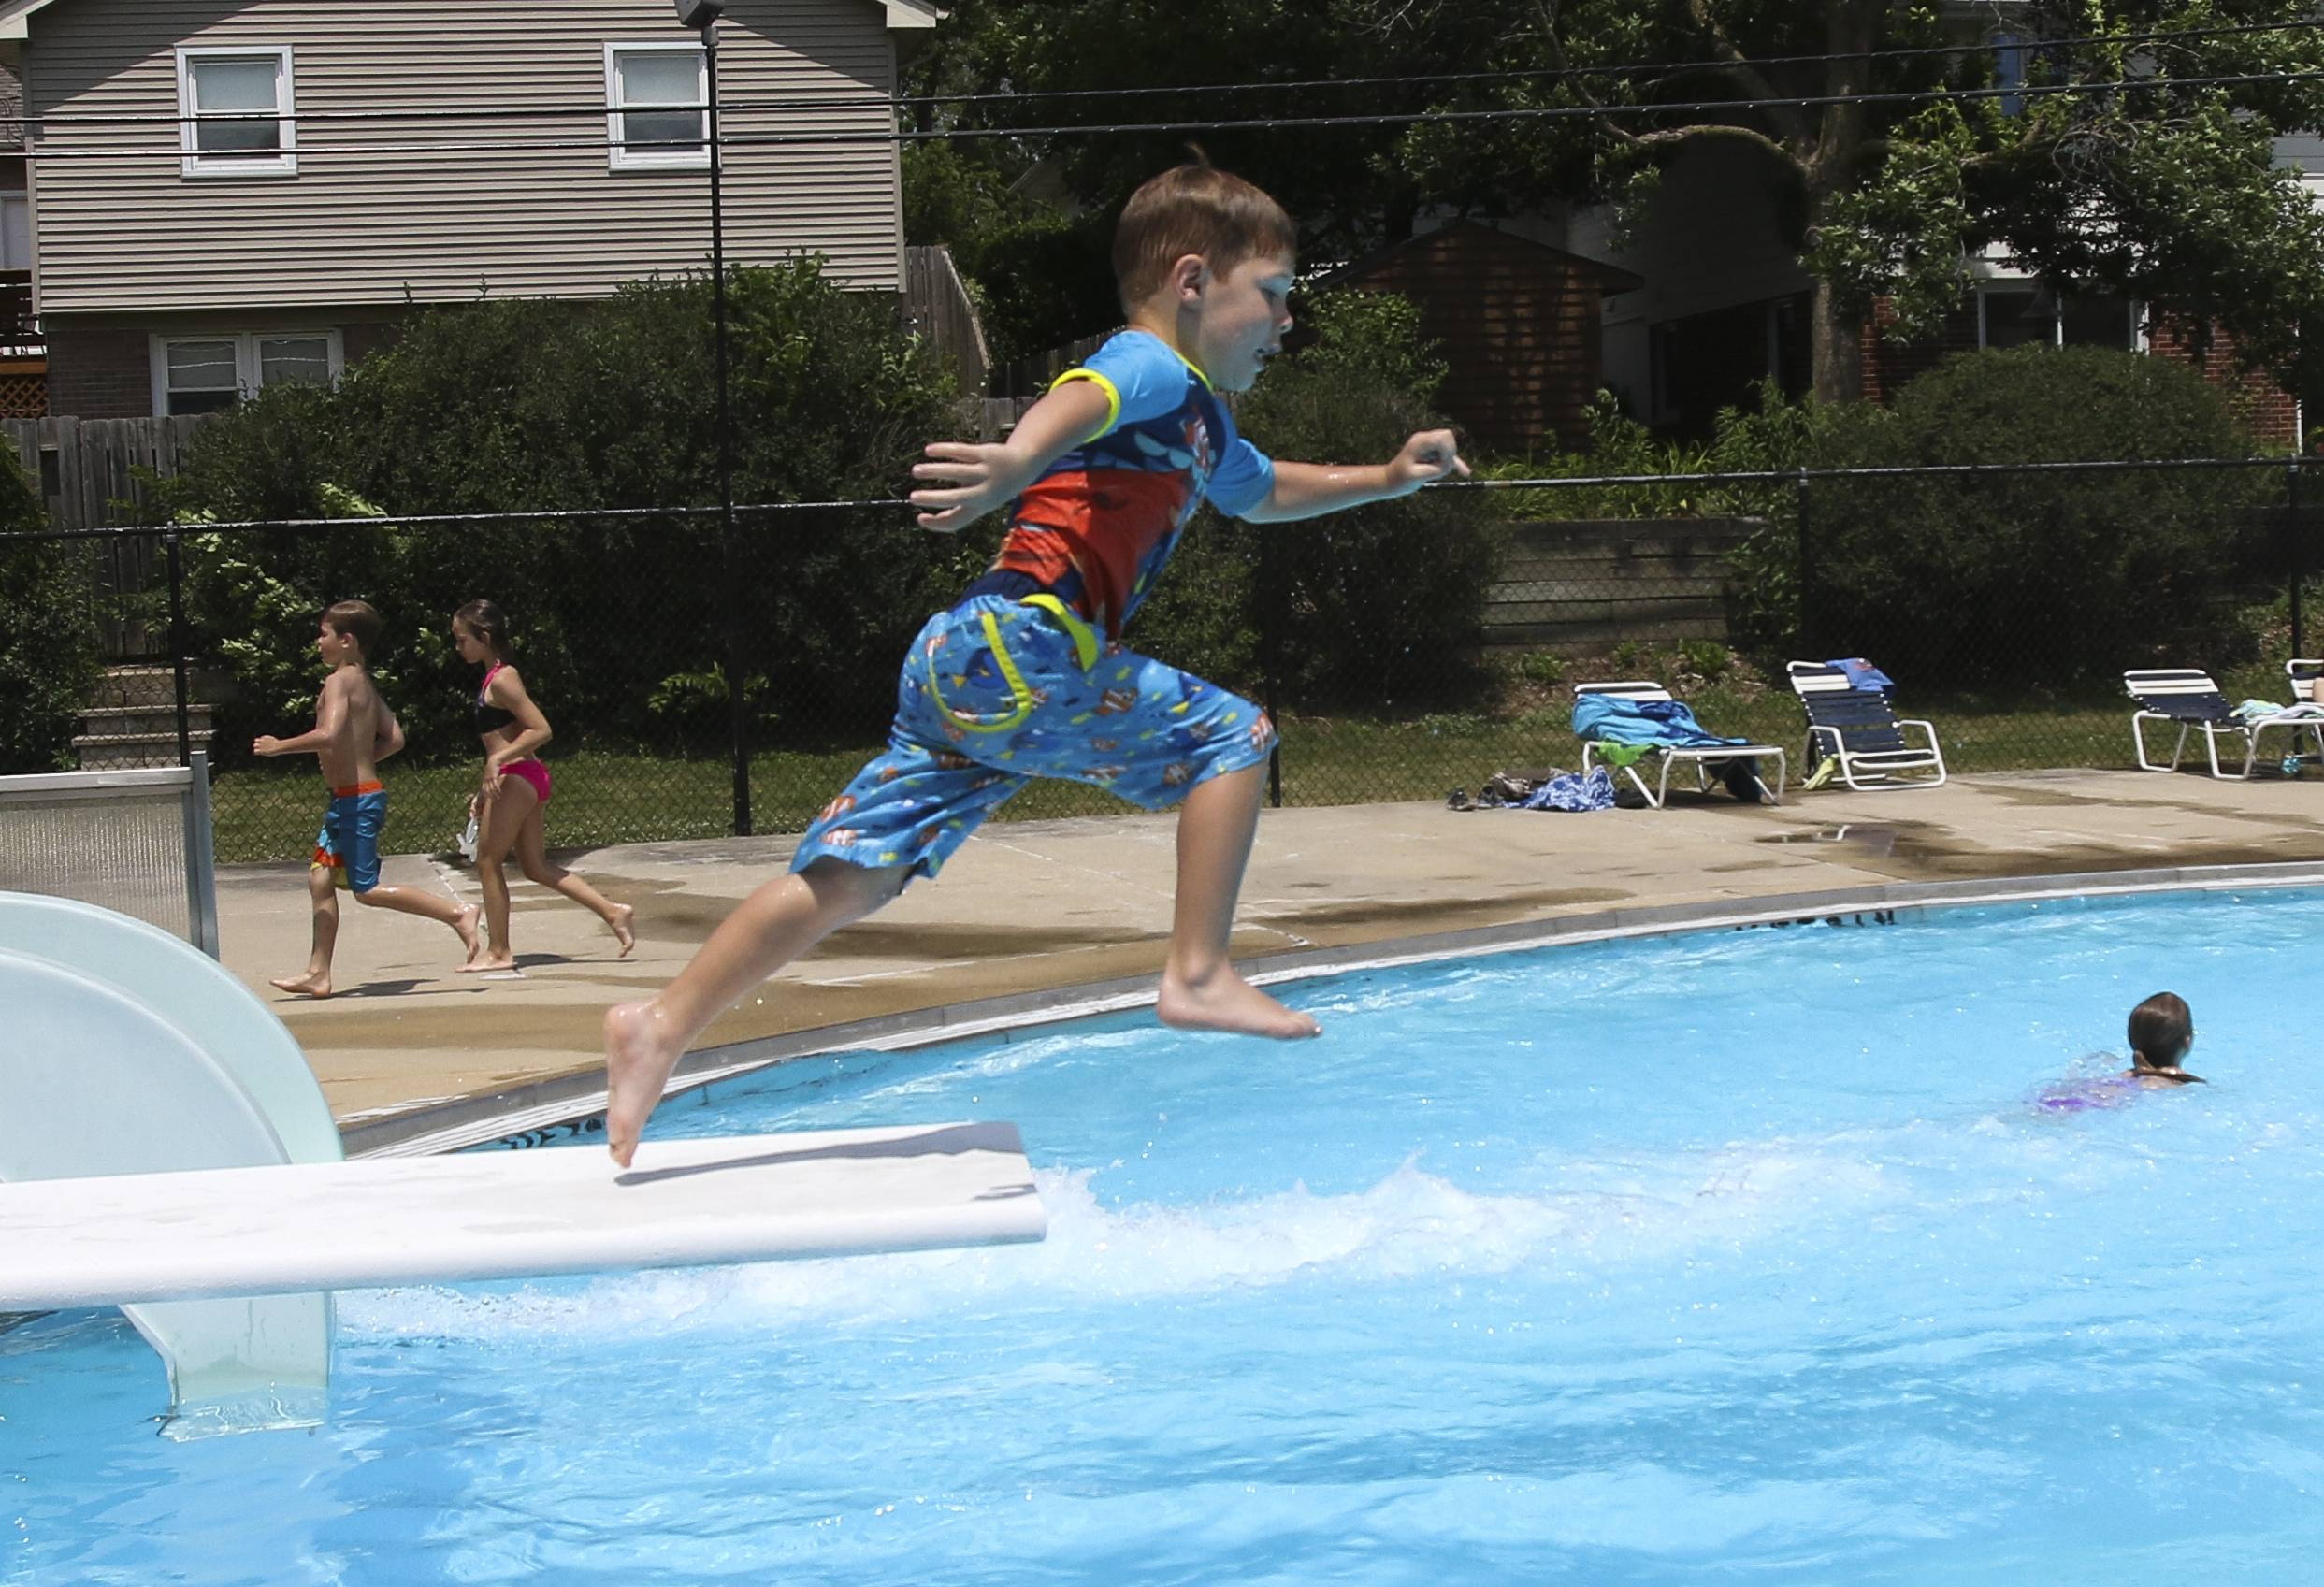 There were no summer swimming moments like this one this year at Lufkin Pool in Villa Park, which was idled when the village board decided in February not to spend $200,000 on basic repairs that could have allowed it to remain open.